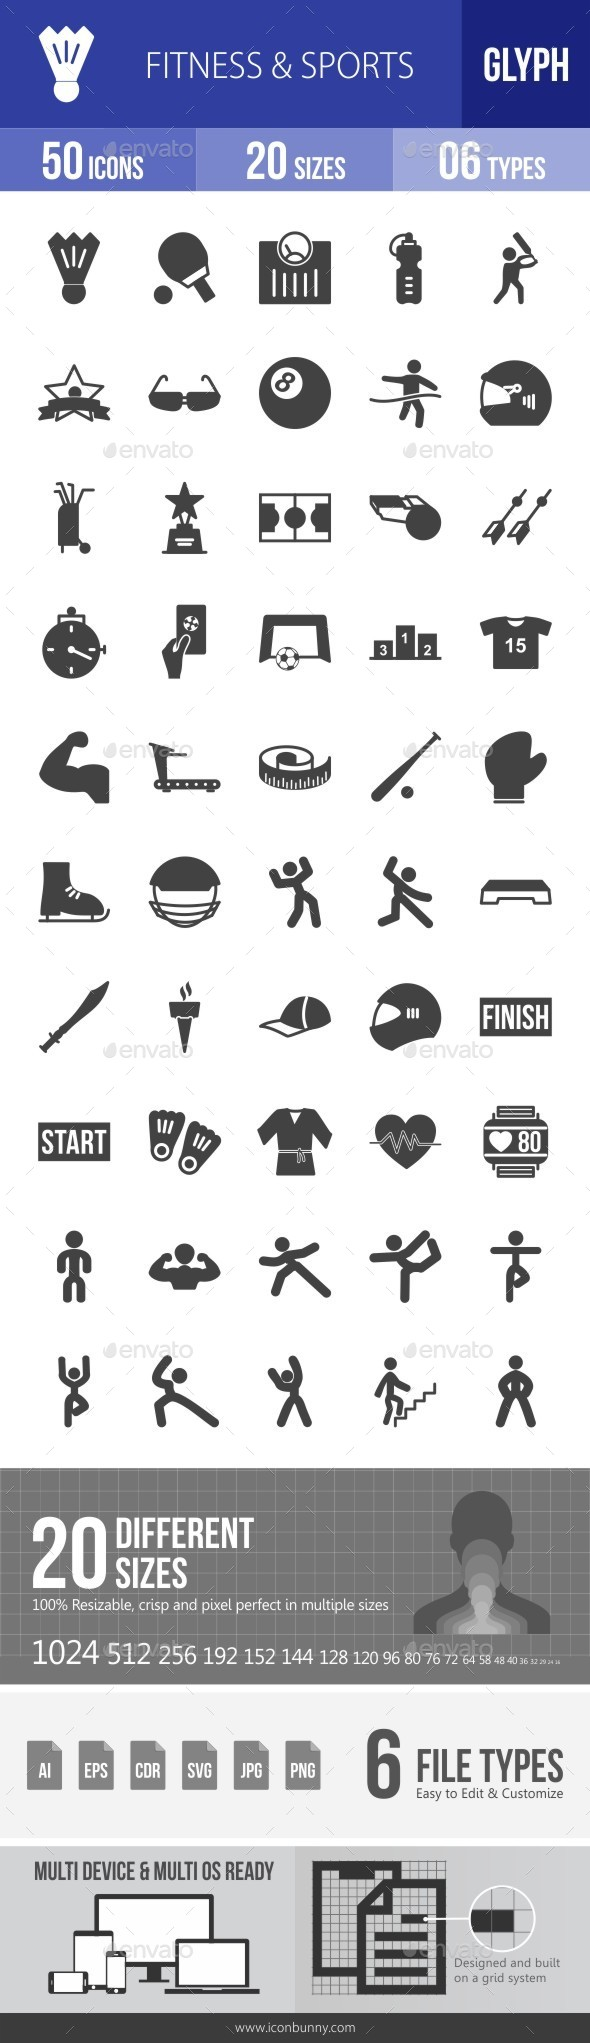 Fitness & Sports Glyph Icons - Icons